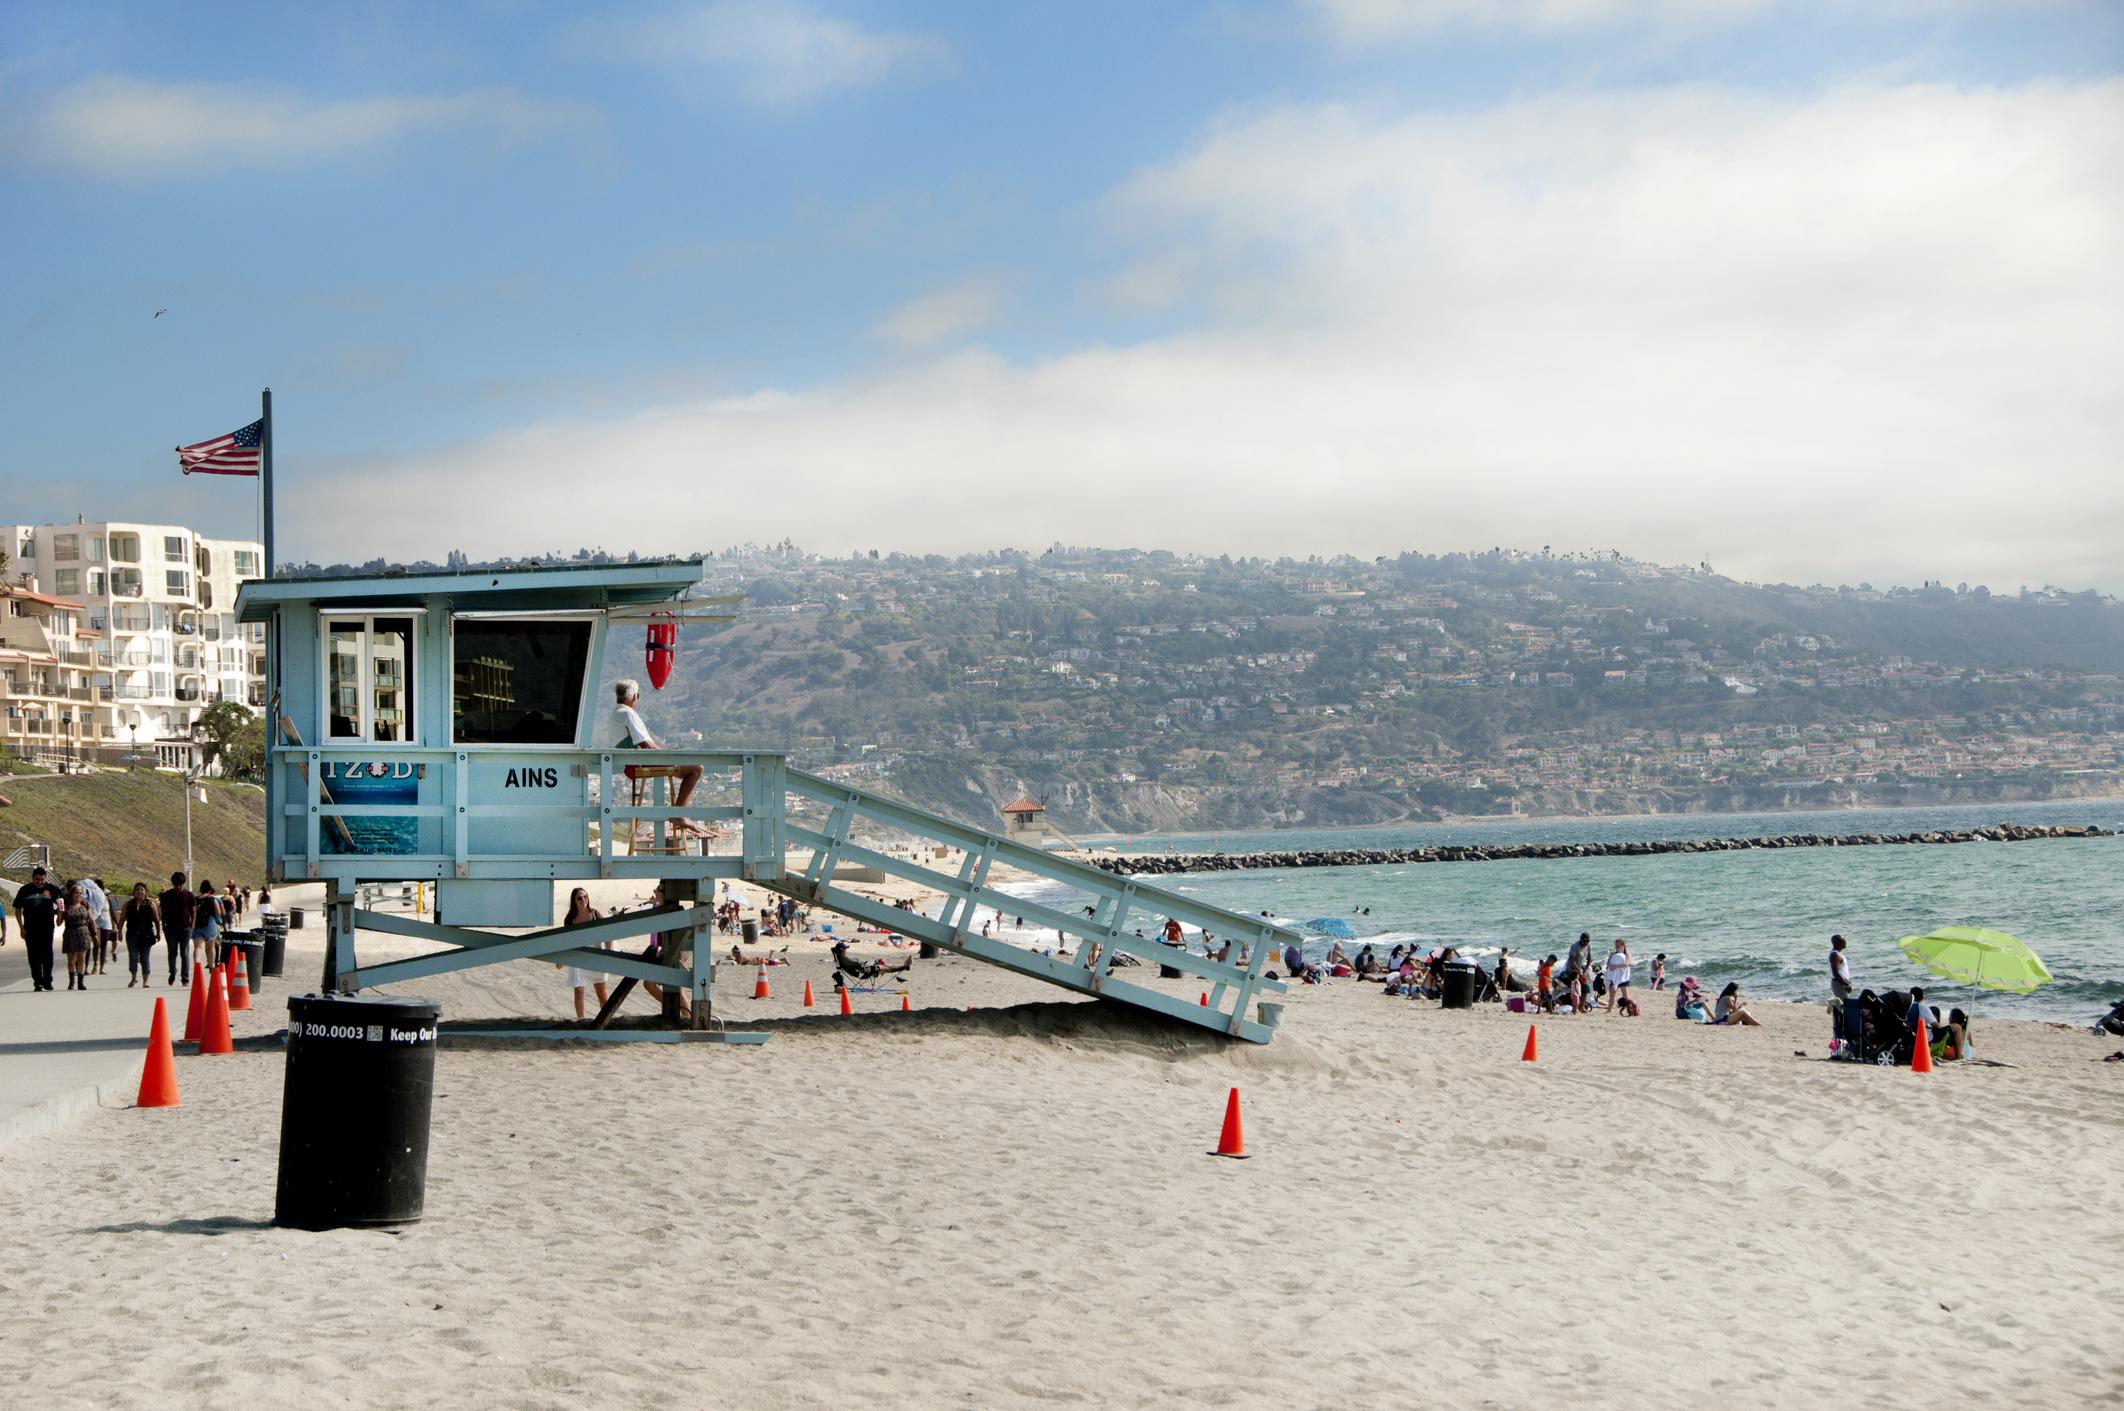 Step away from the glitz and glam of Hollywood toembrace the LA beach lifestyle